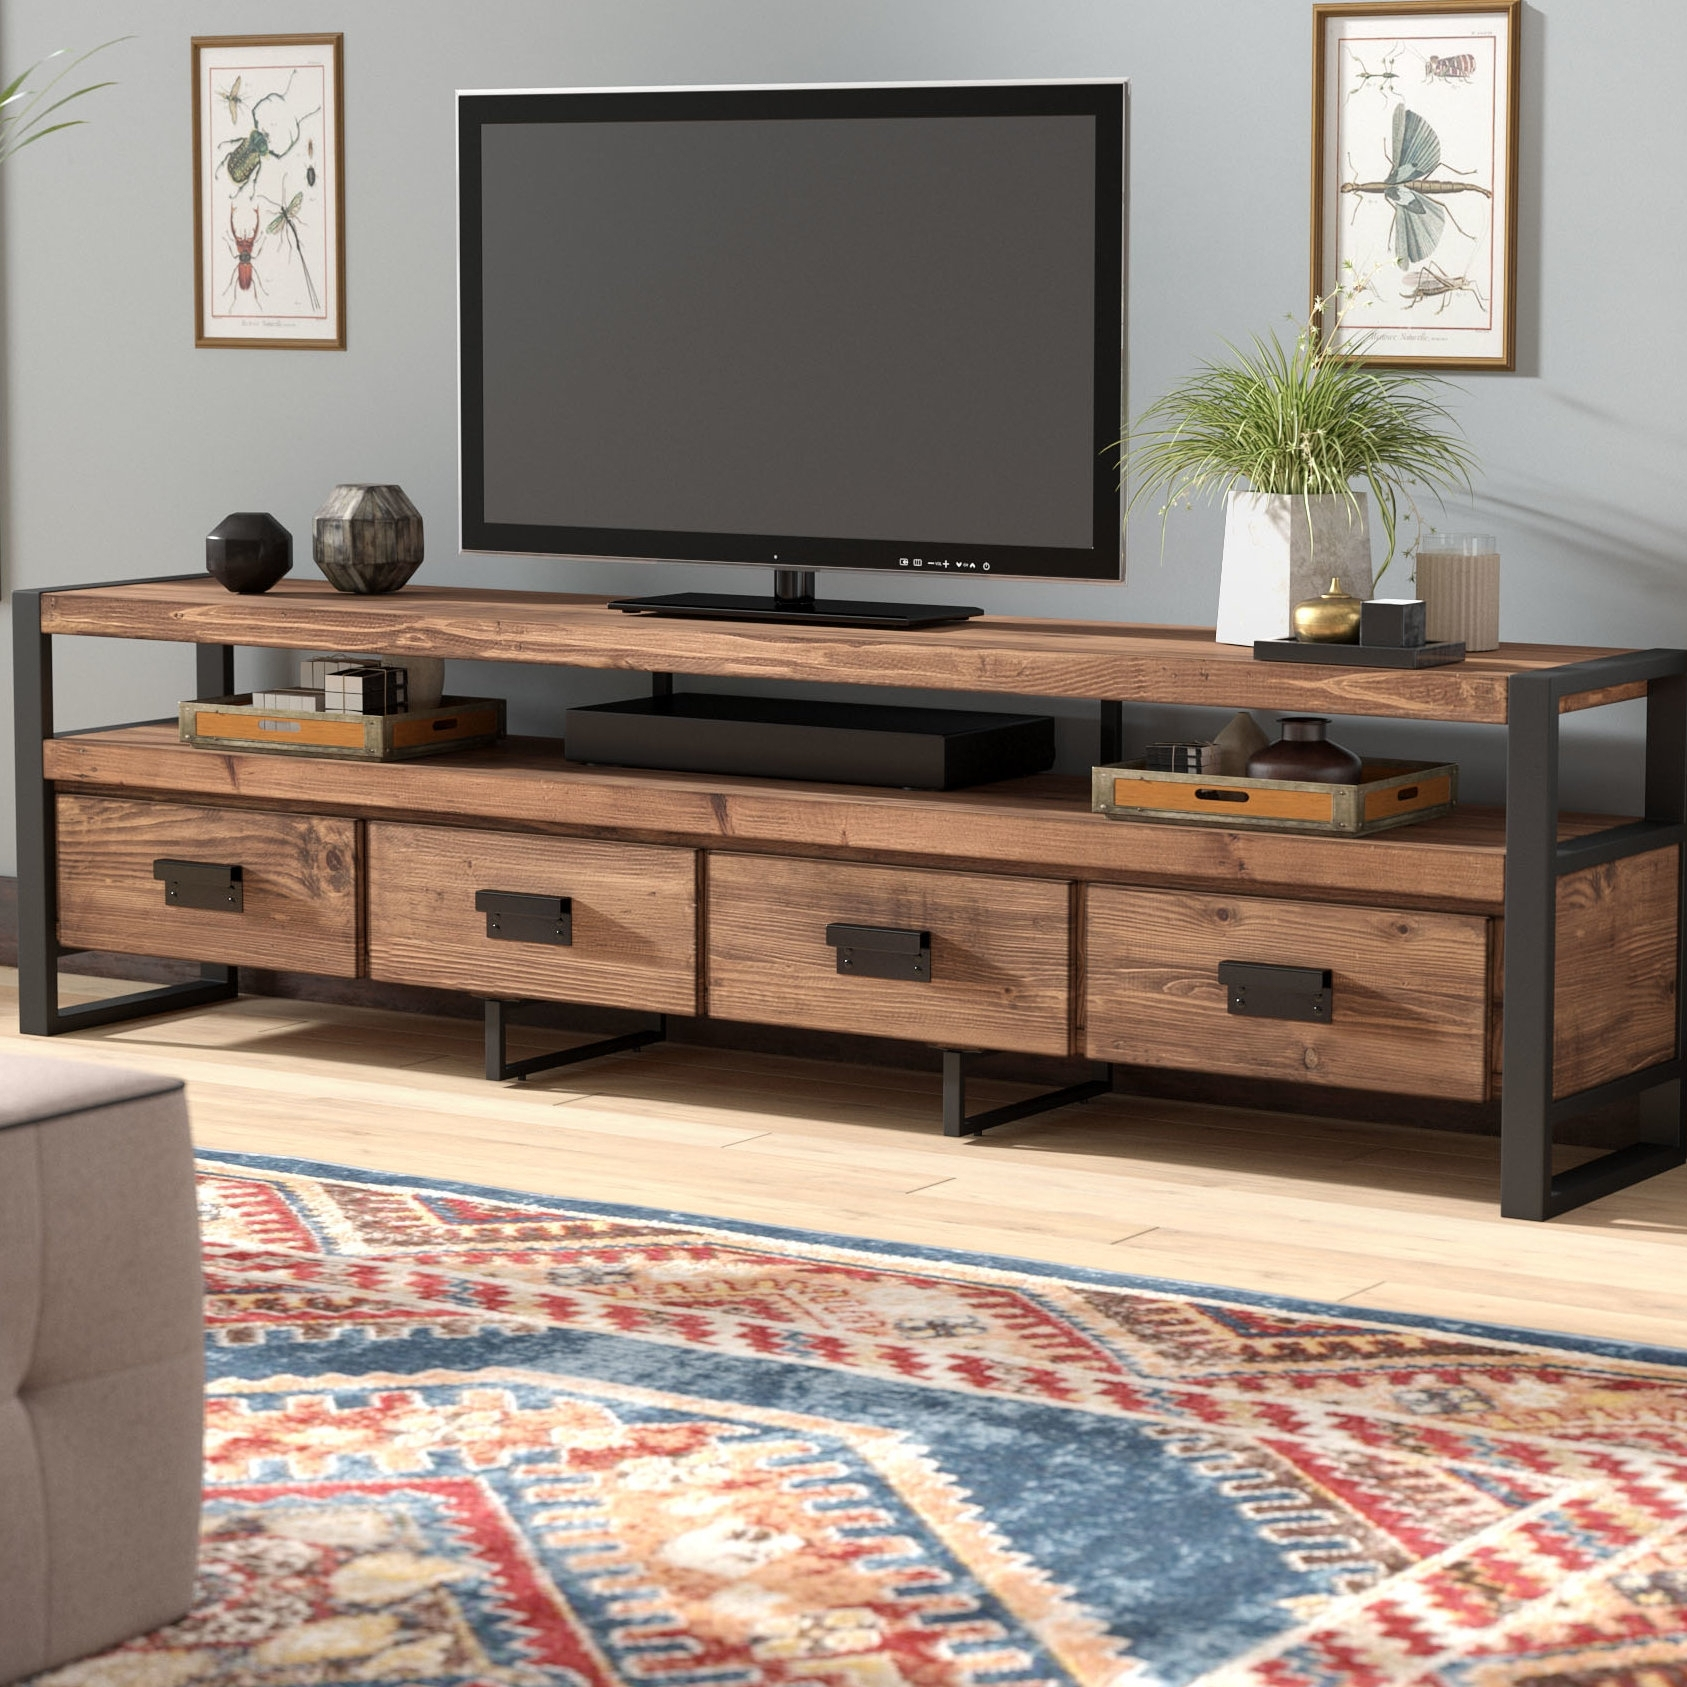 "Union Rustic Kylee Tv Stand For Tvs Up To 78"" & Reviews 